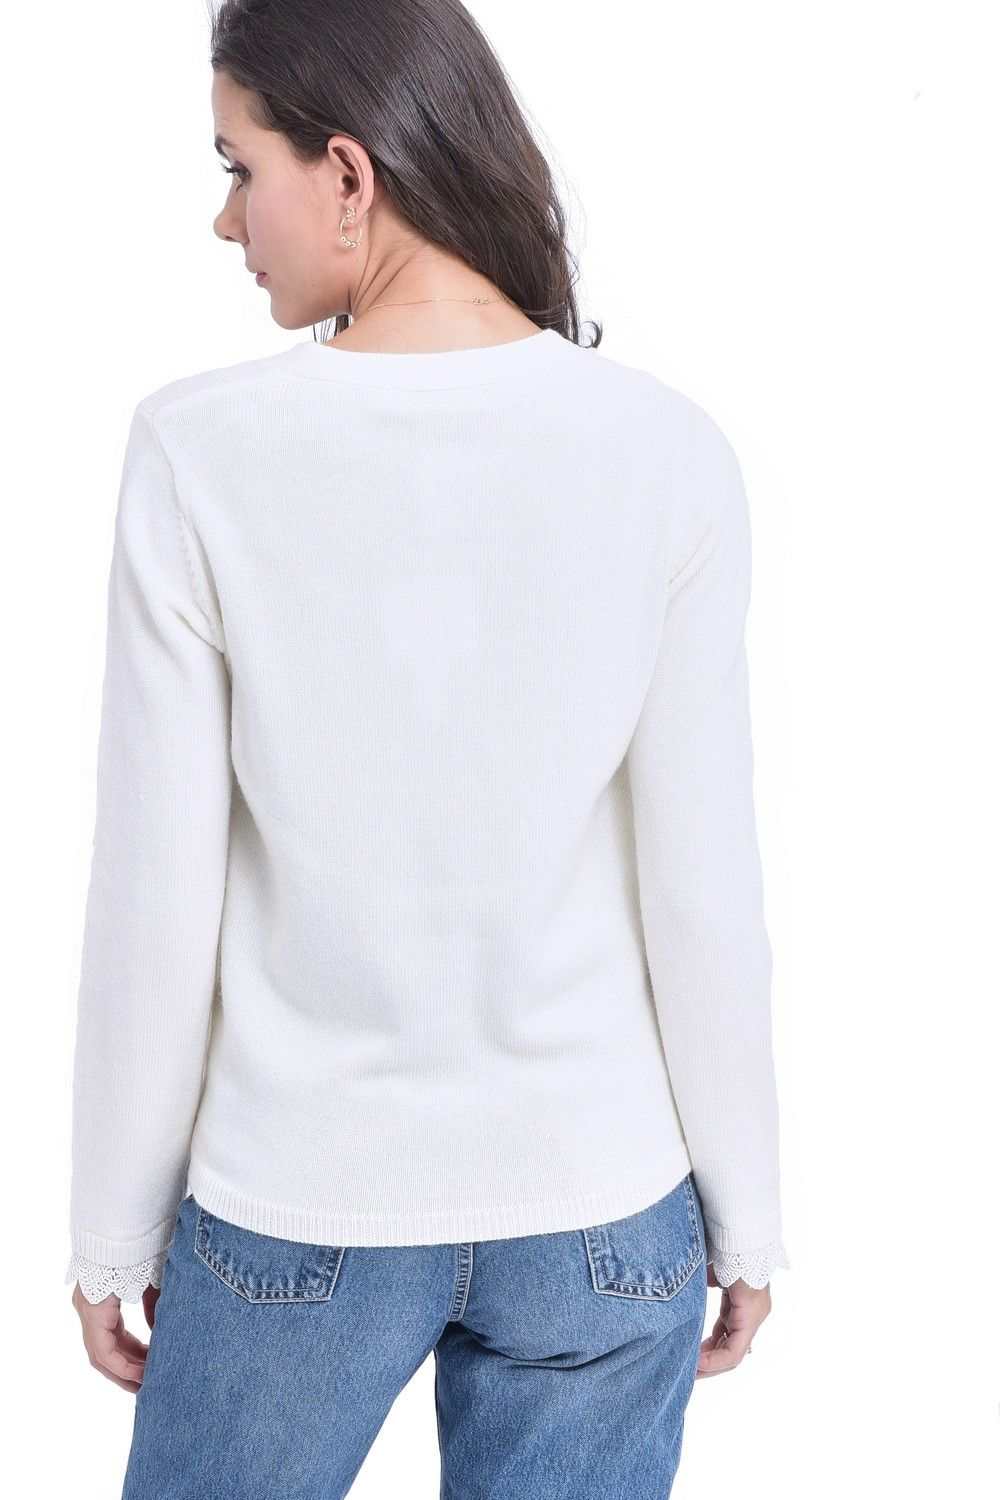 William De Faye V-neck Cardigan with Lace Sleeve Detail in Natural